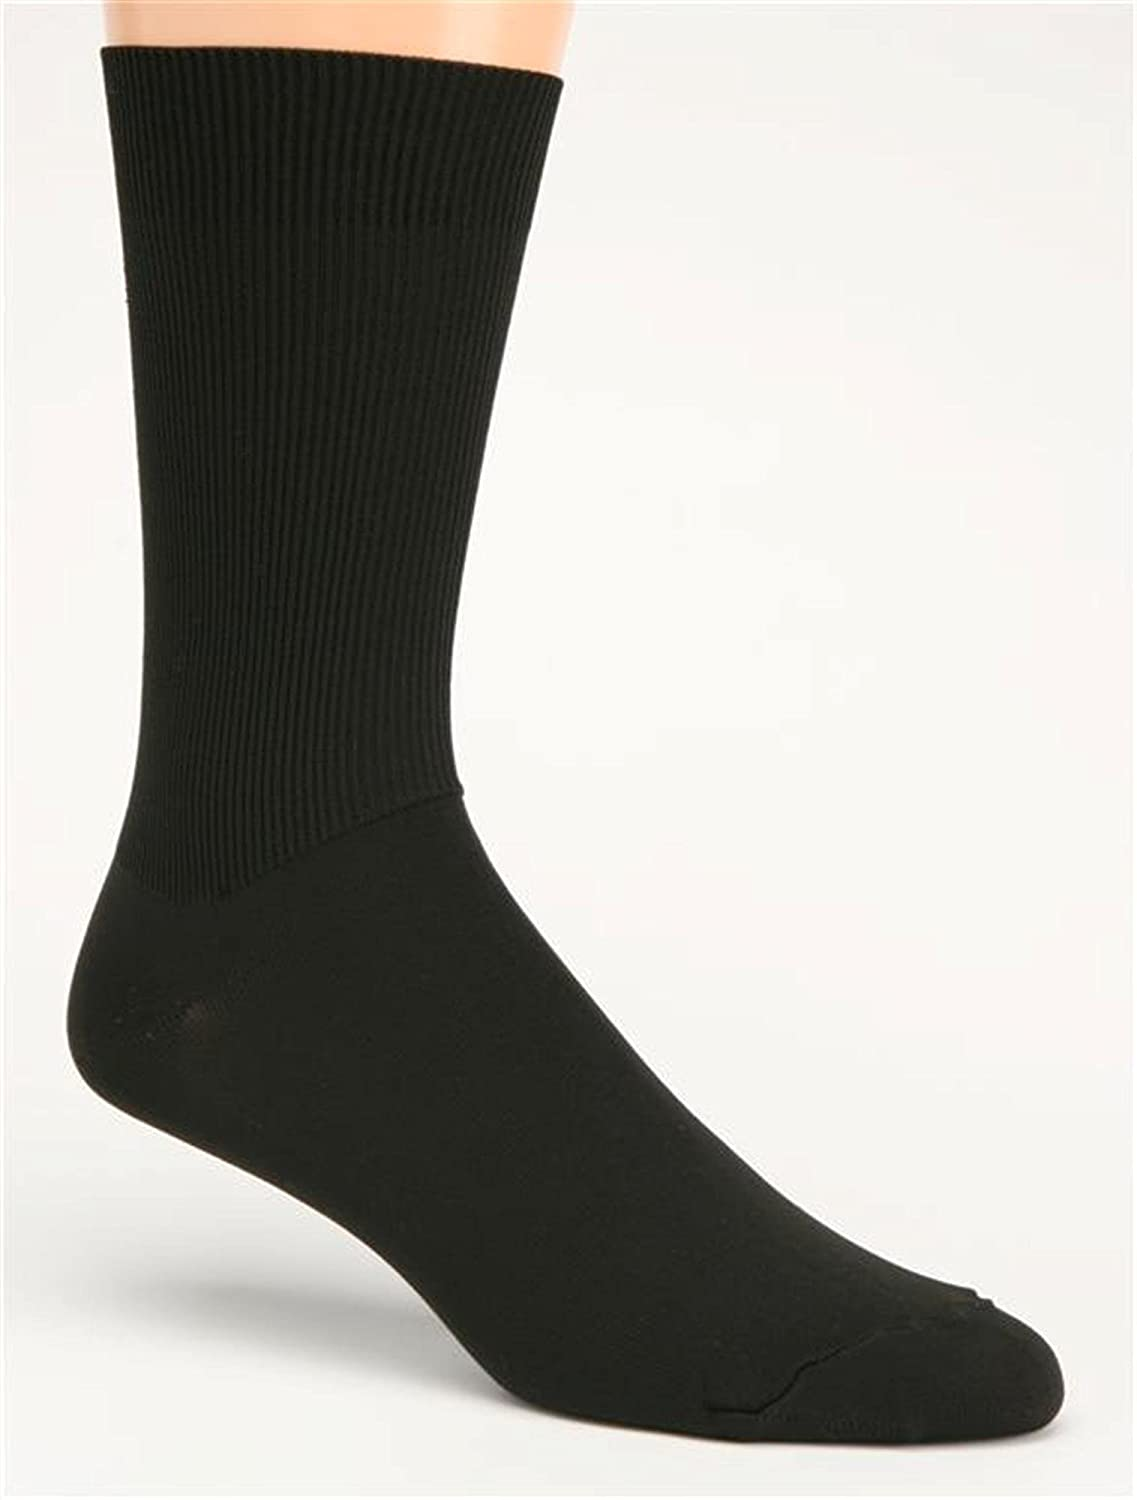 J.B. Expedition Adventure Travel Quick Dry Socks (2 Pairs) SoxShop